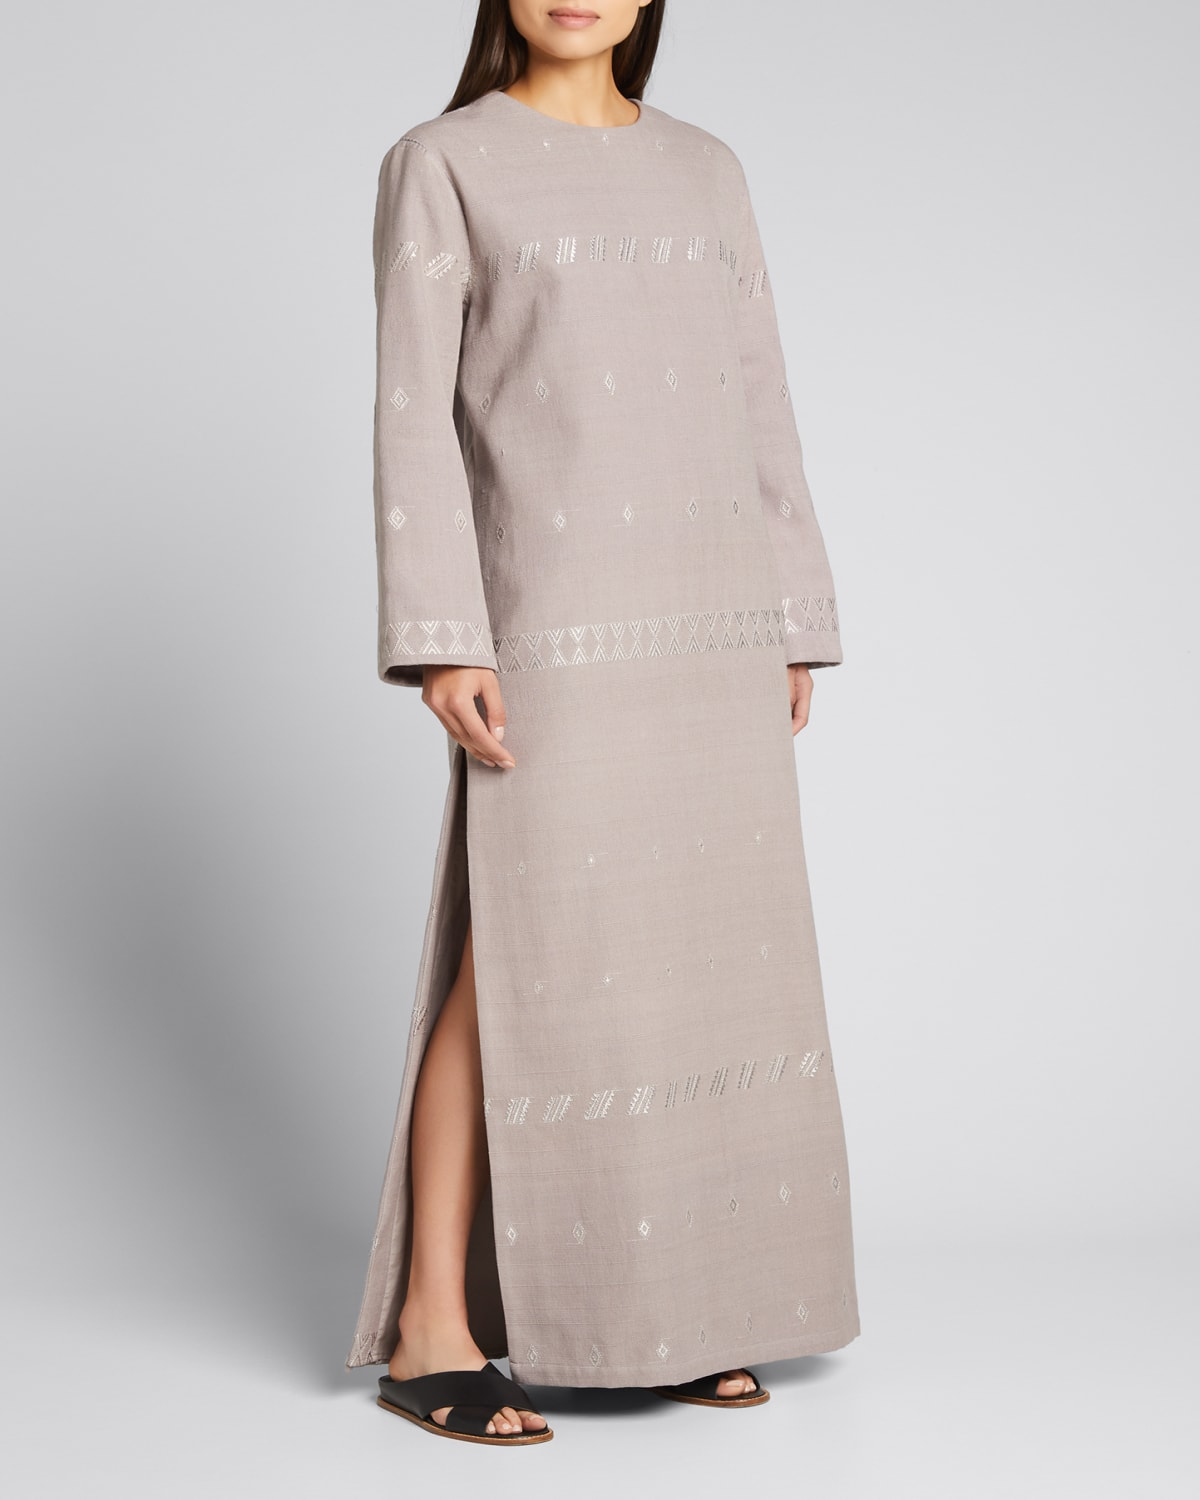 Carla Embroidered Cotton-Blend Dress